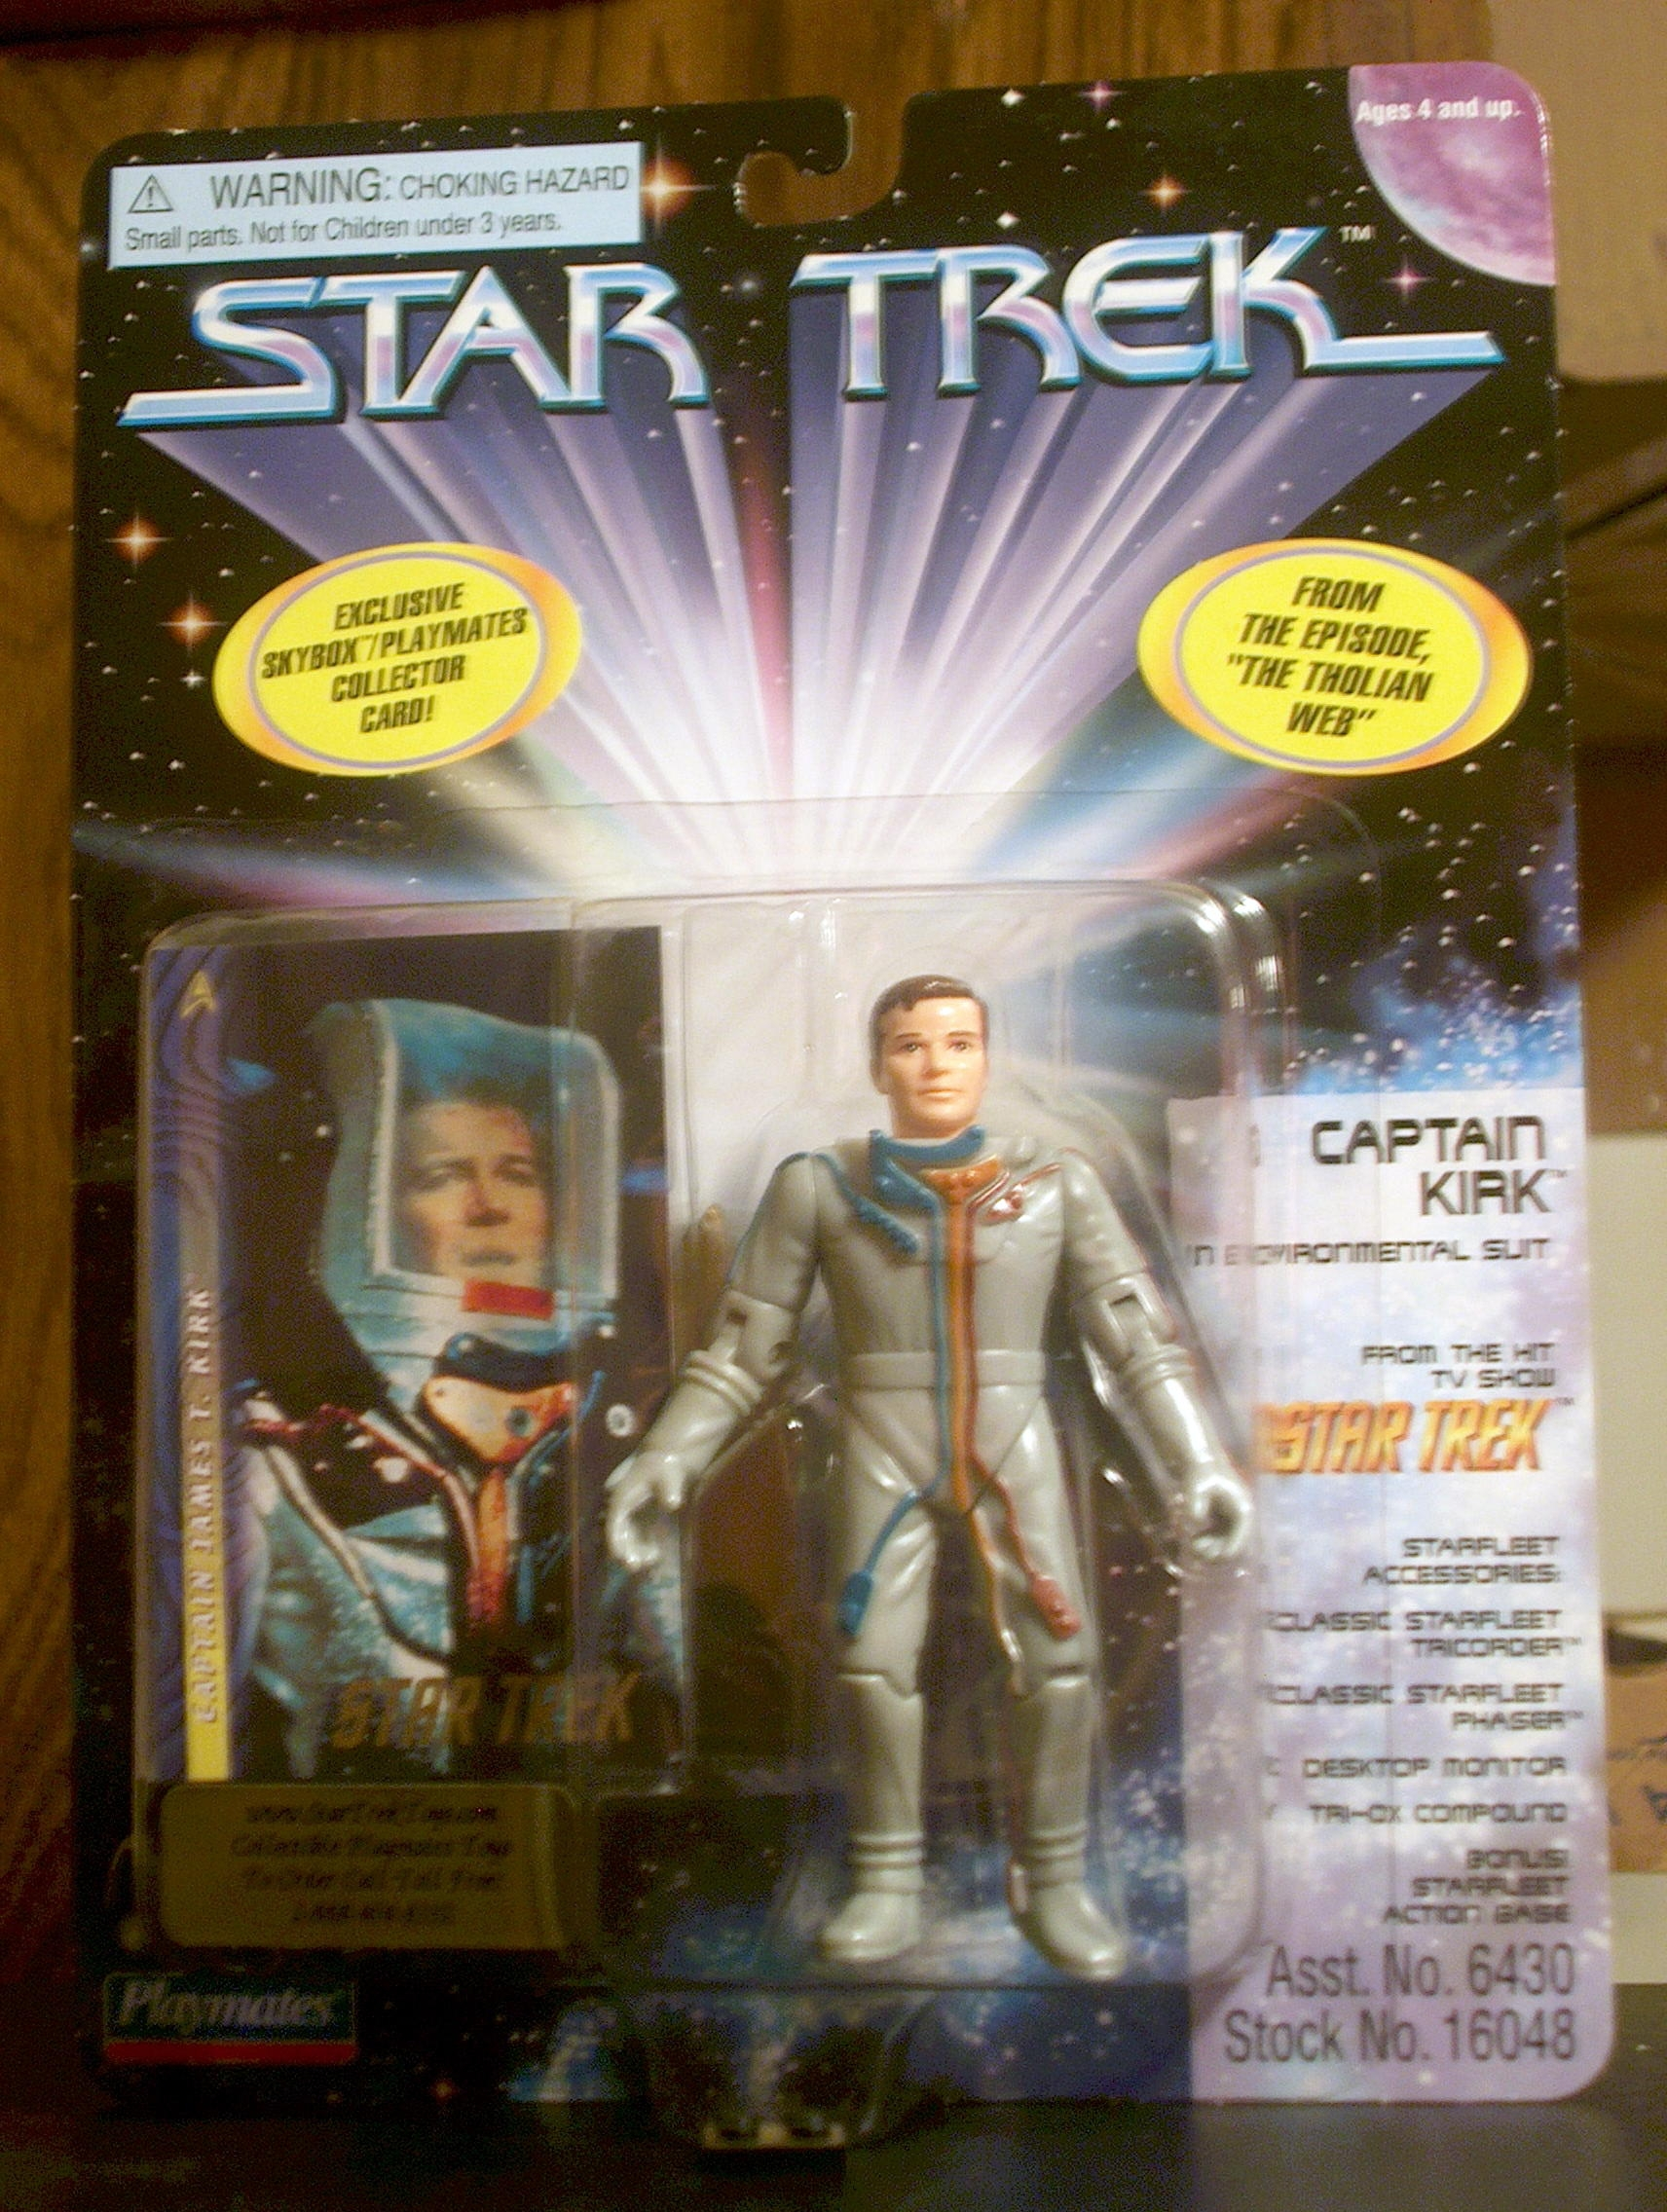 Captain Kirk (Environmental Suit)